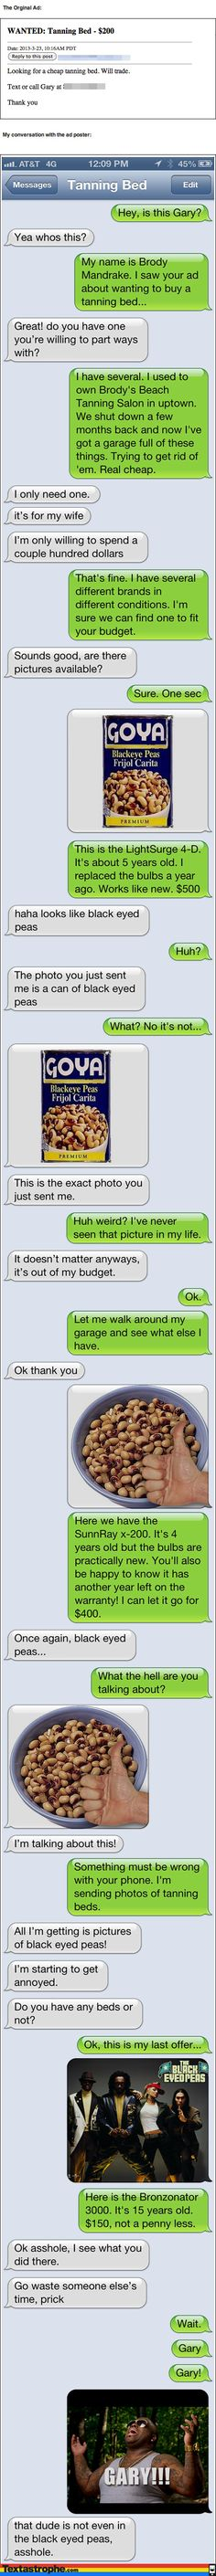 'Textastrophe' Pranks Will Make You Regret Handing Out Your Number